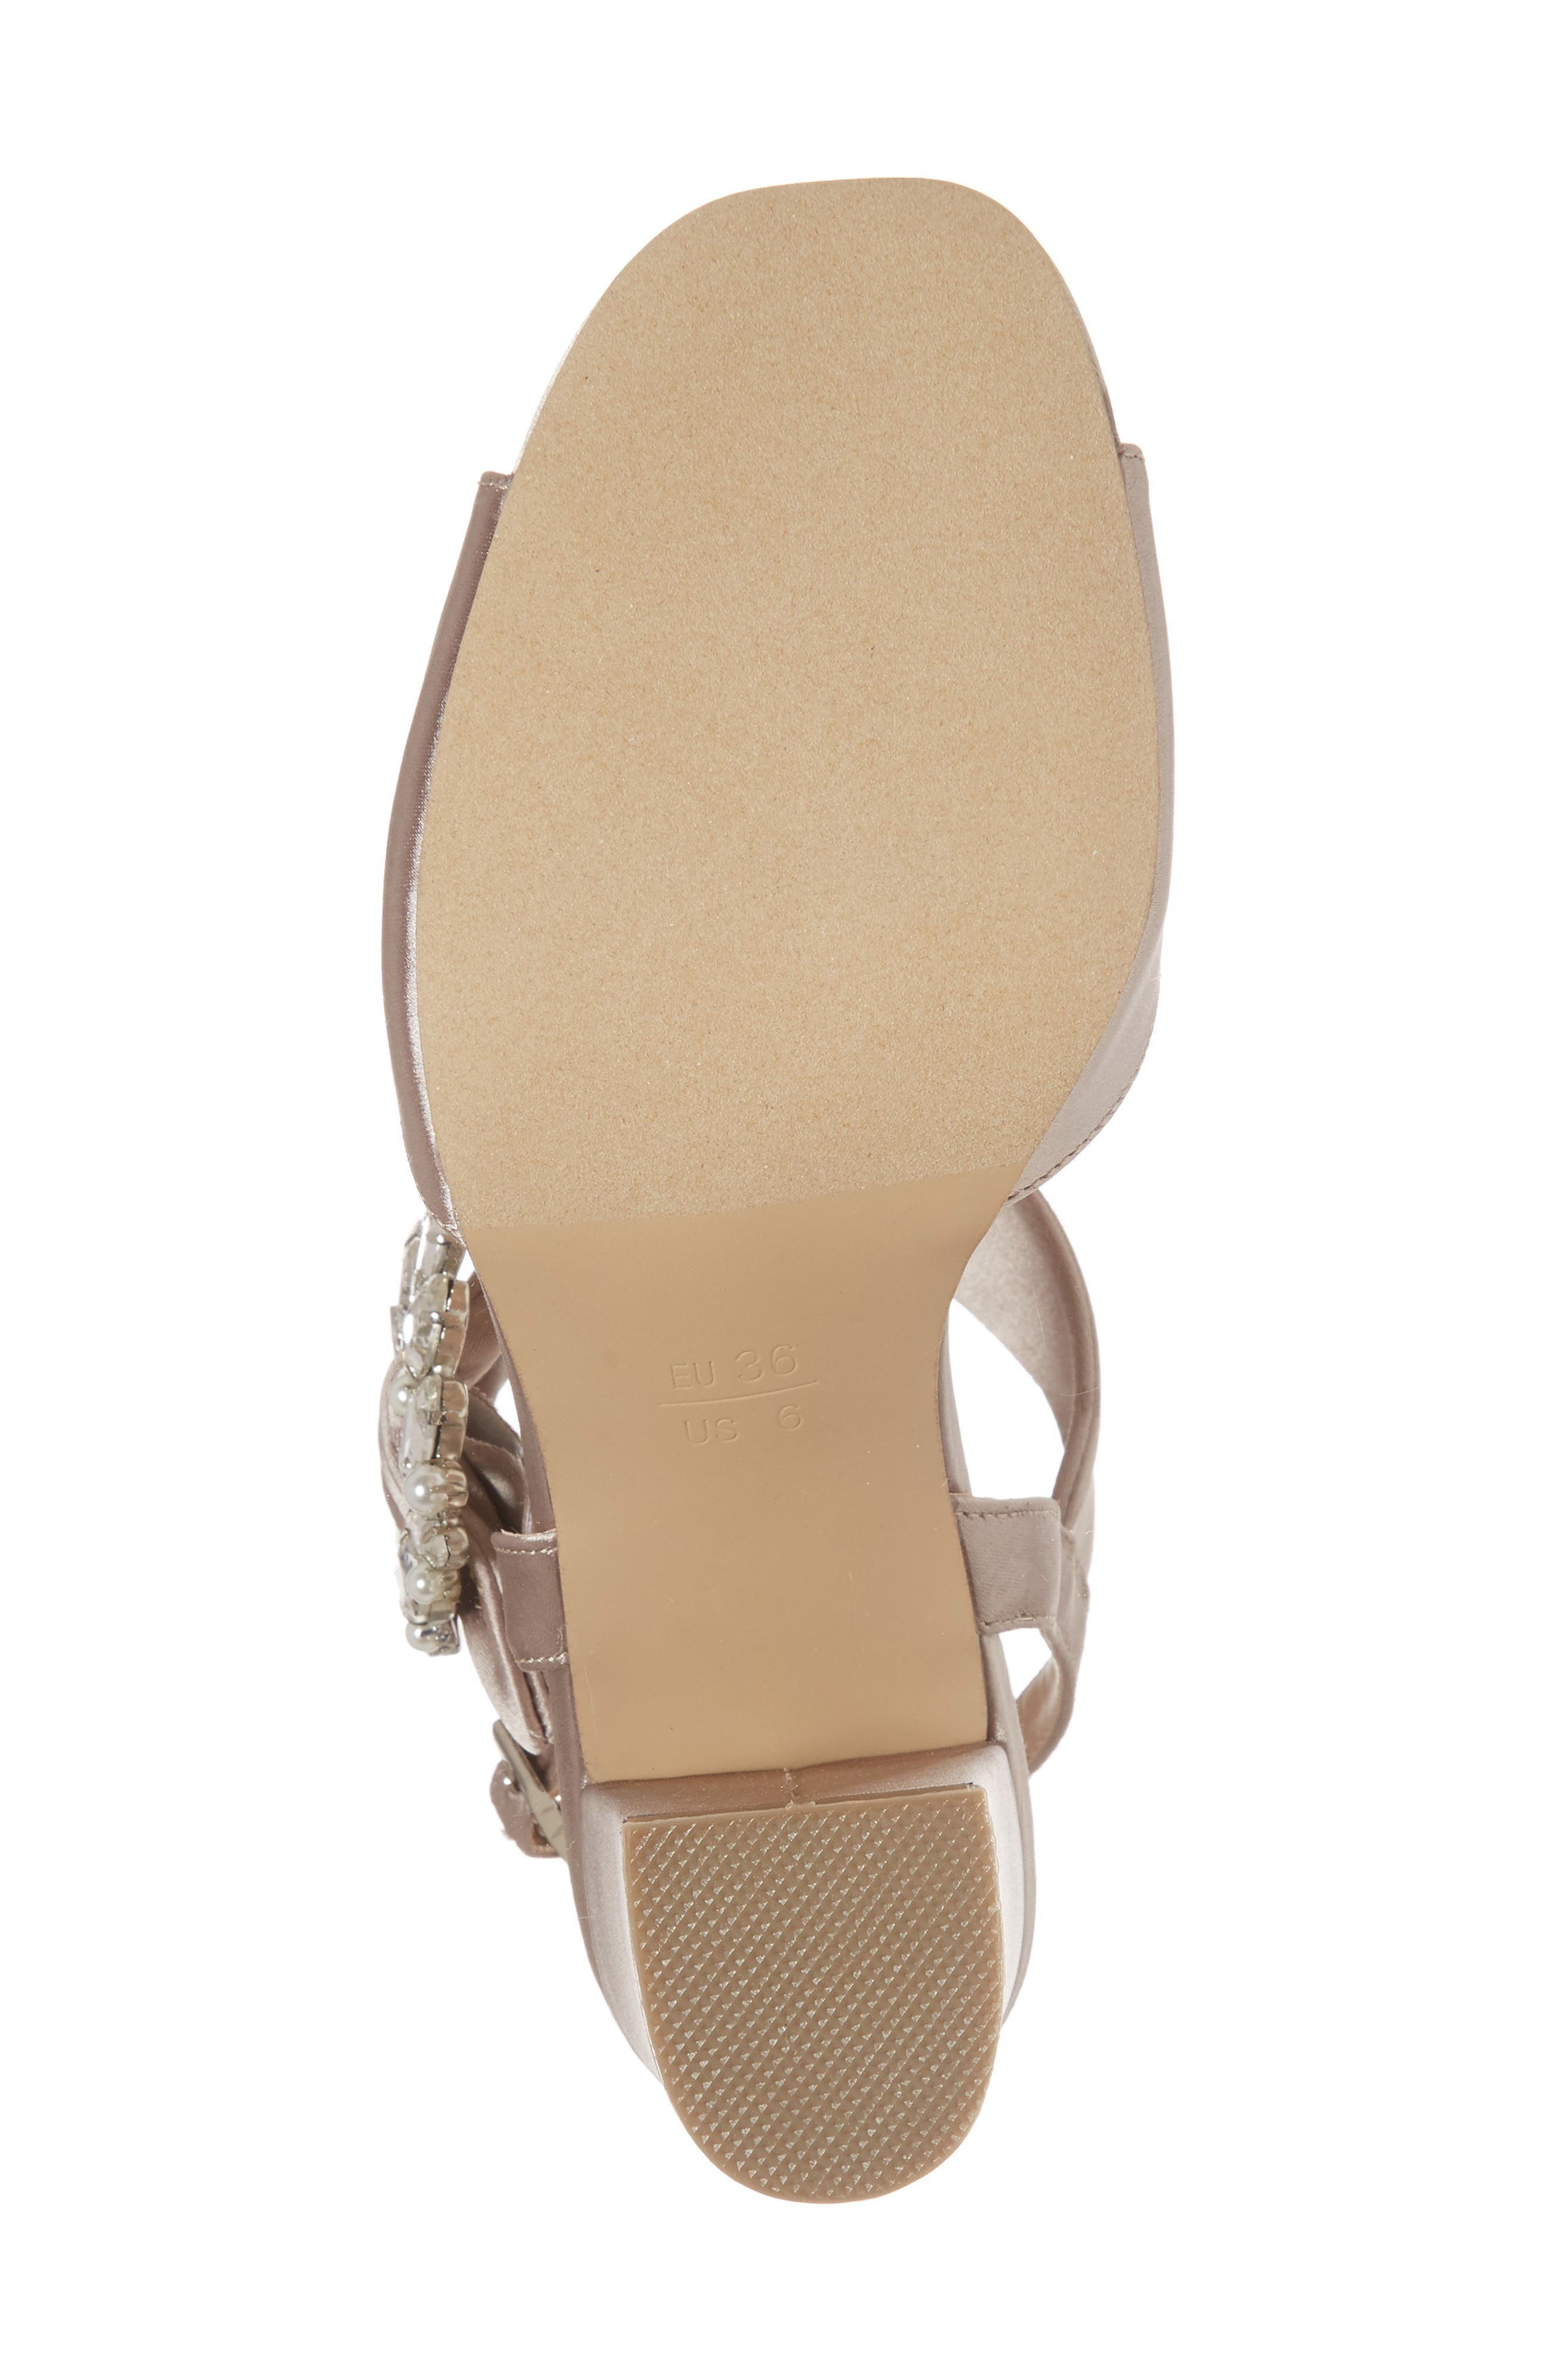 Manhattan Embellished Sandal,                             Alternate thumbnail 6, color,                             TAUPE SATIN